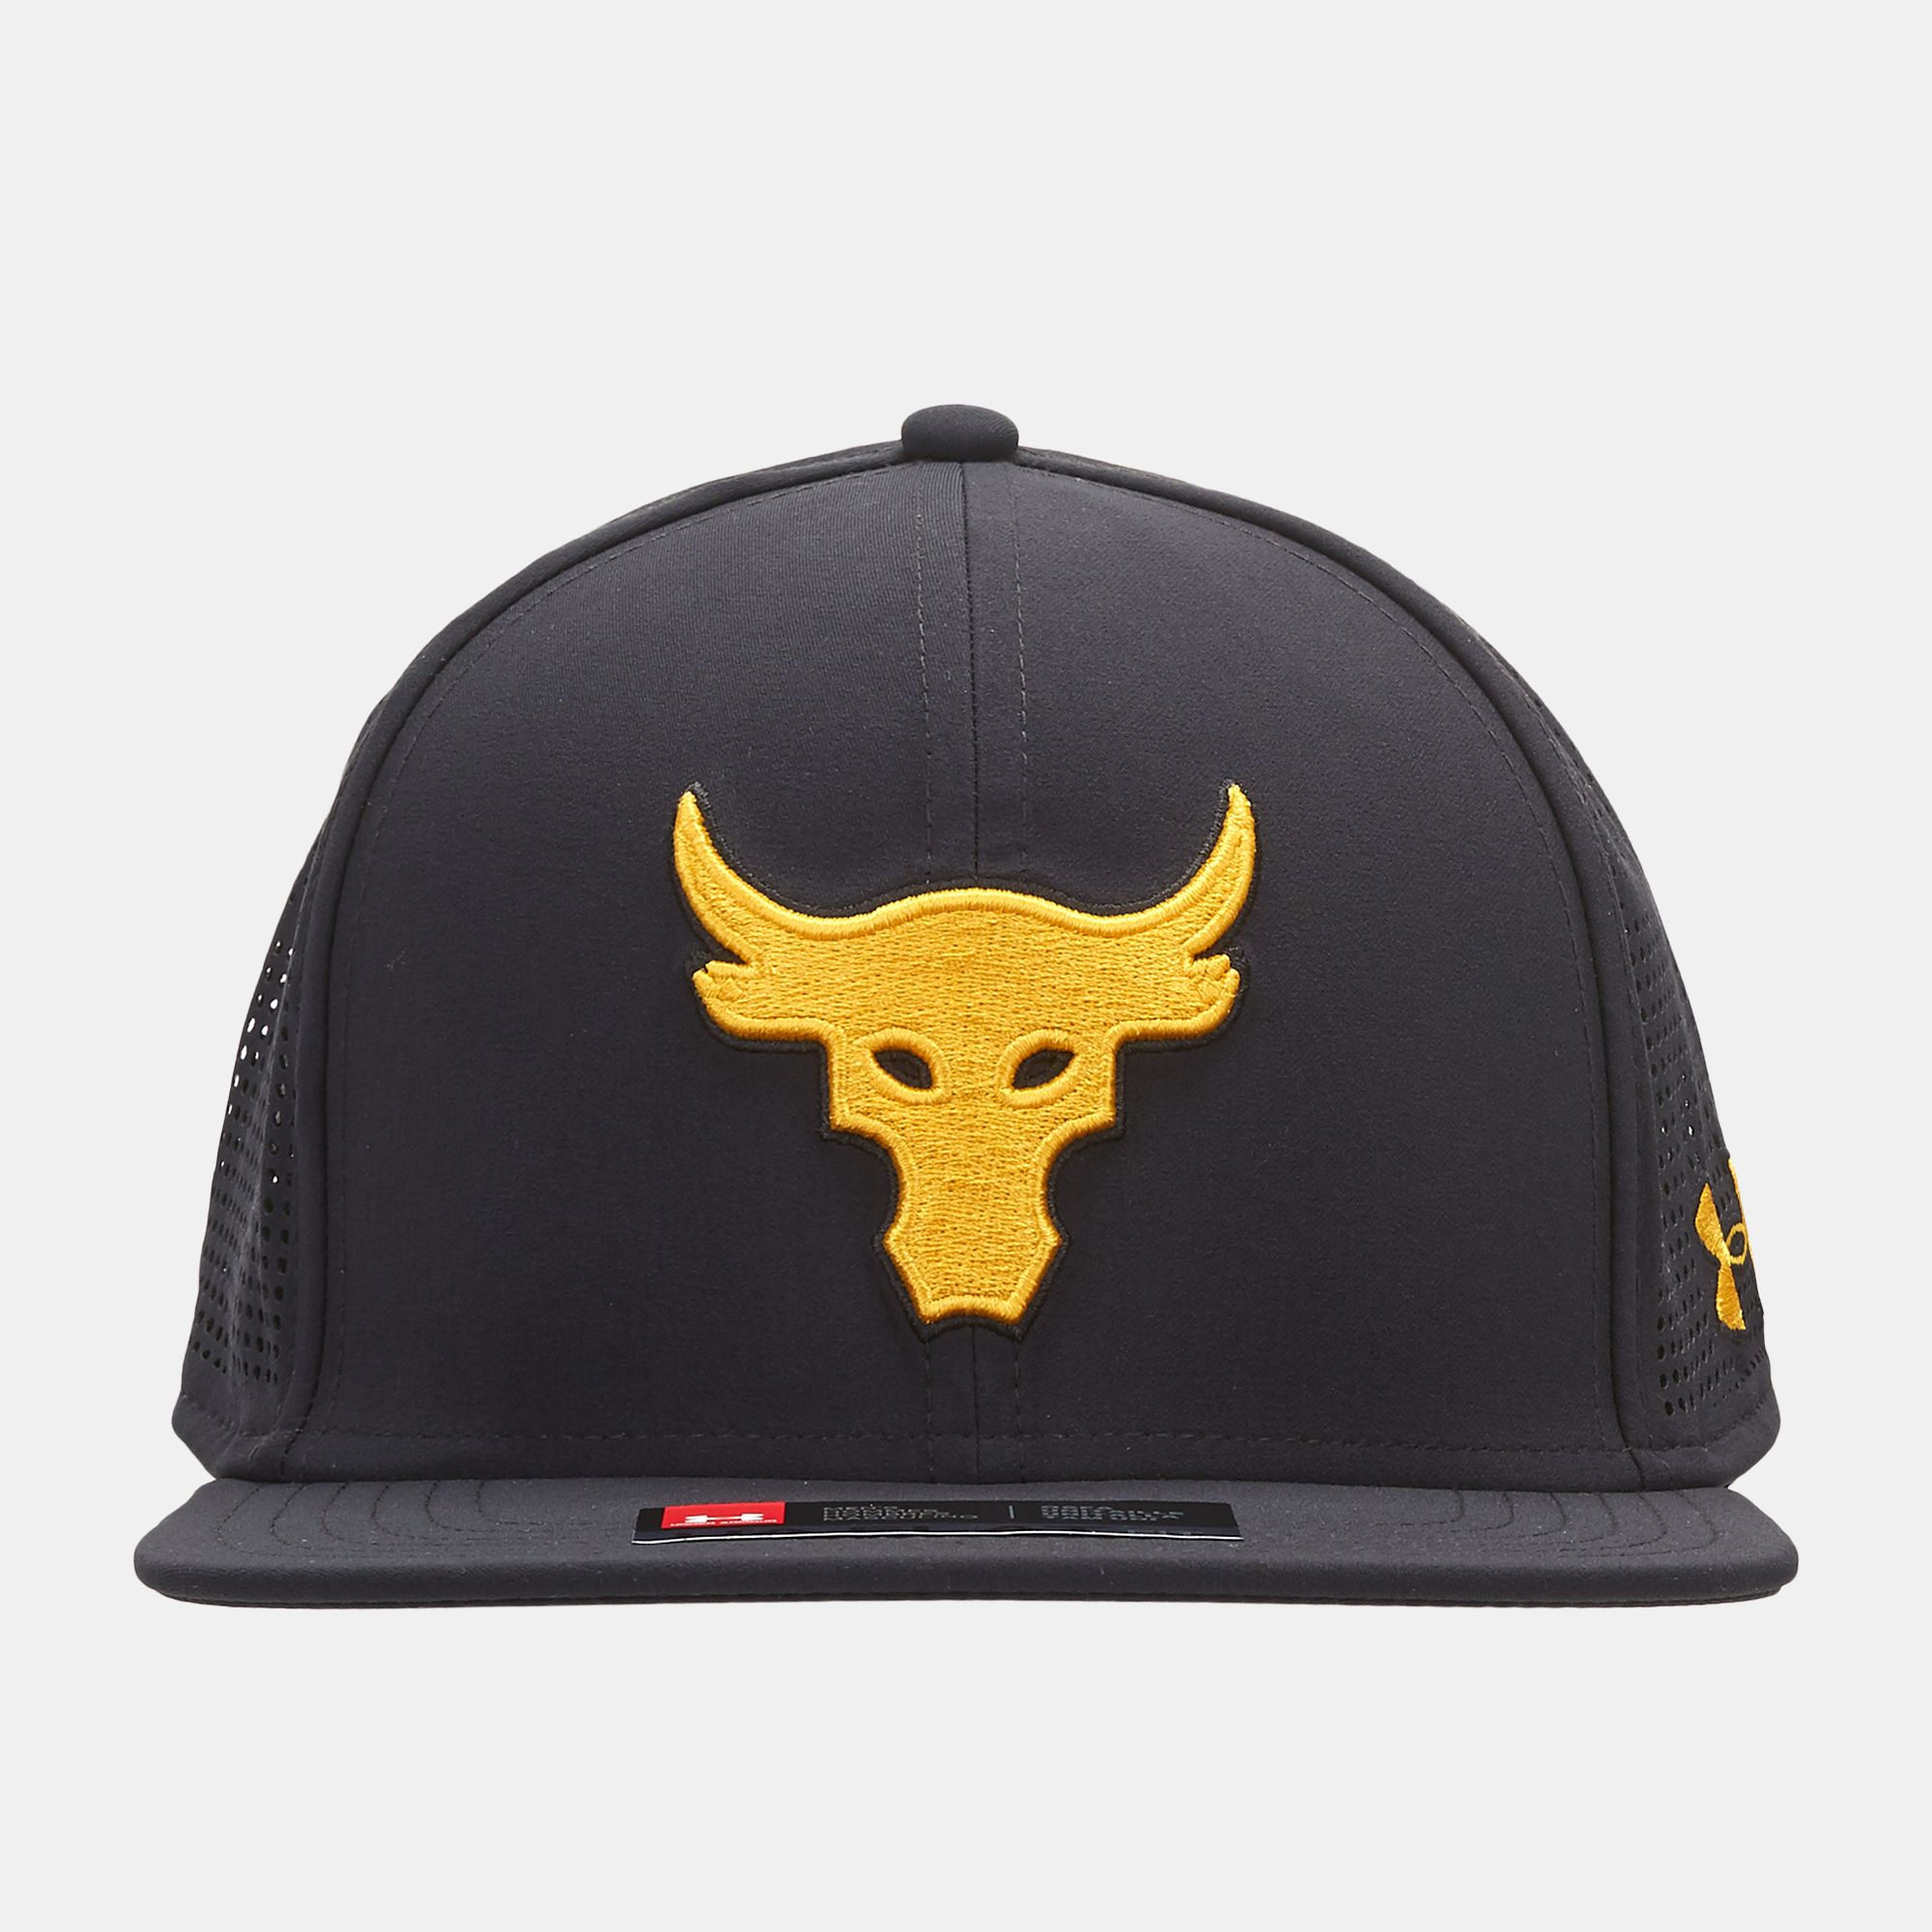 ... new style under armour project rock supervent snapback cap a8f6f a5832 1b715c9d373